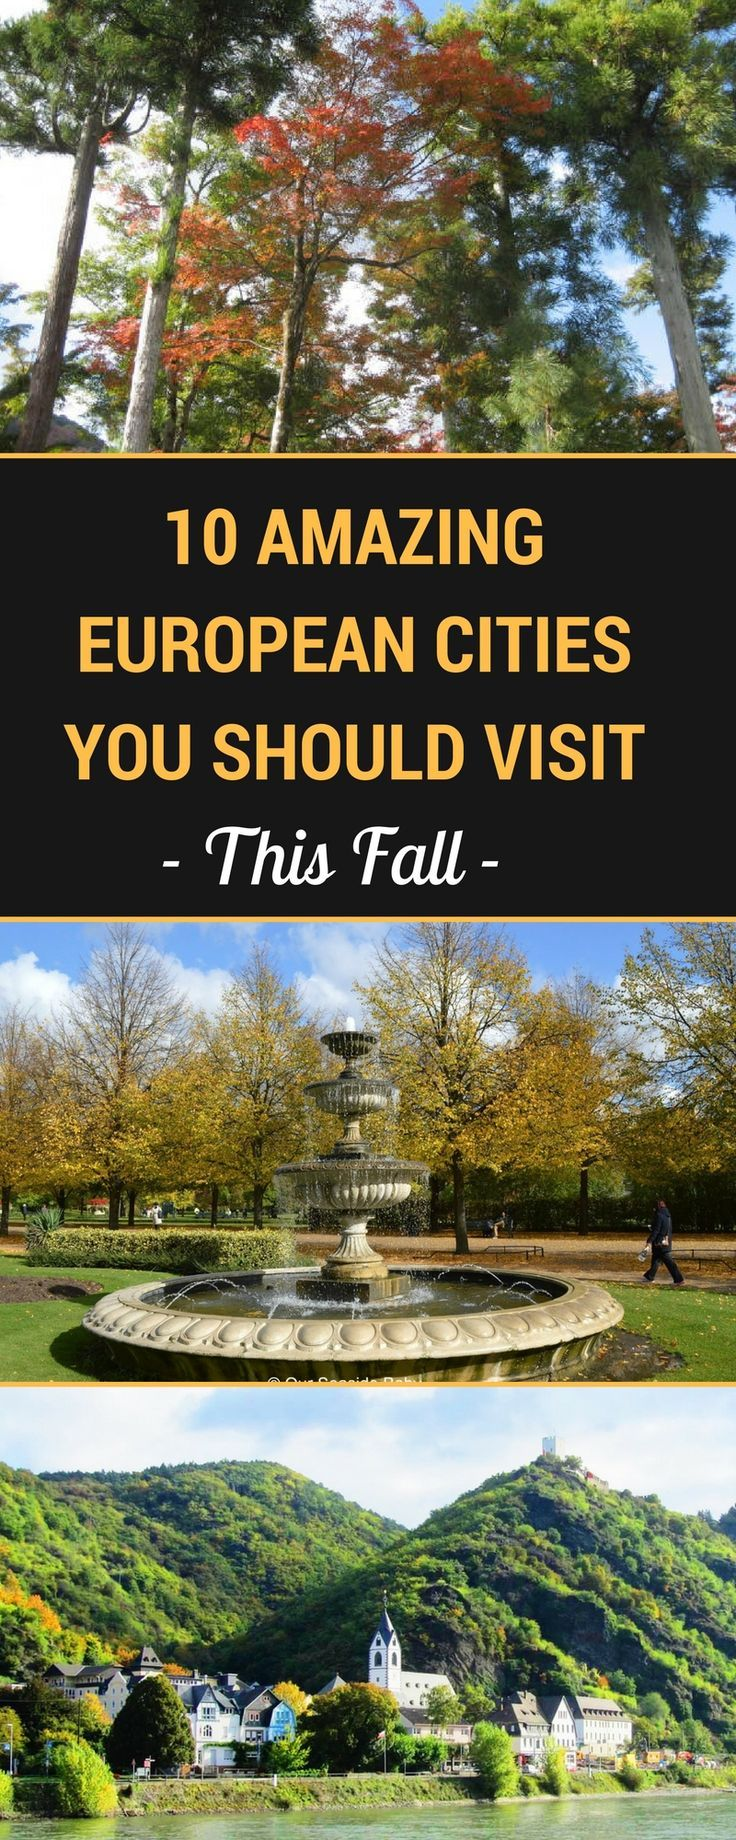 The best places to visit in fall in Europe for atmosphere